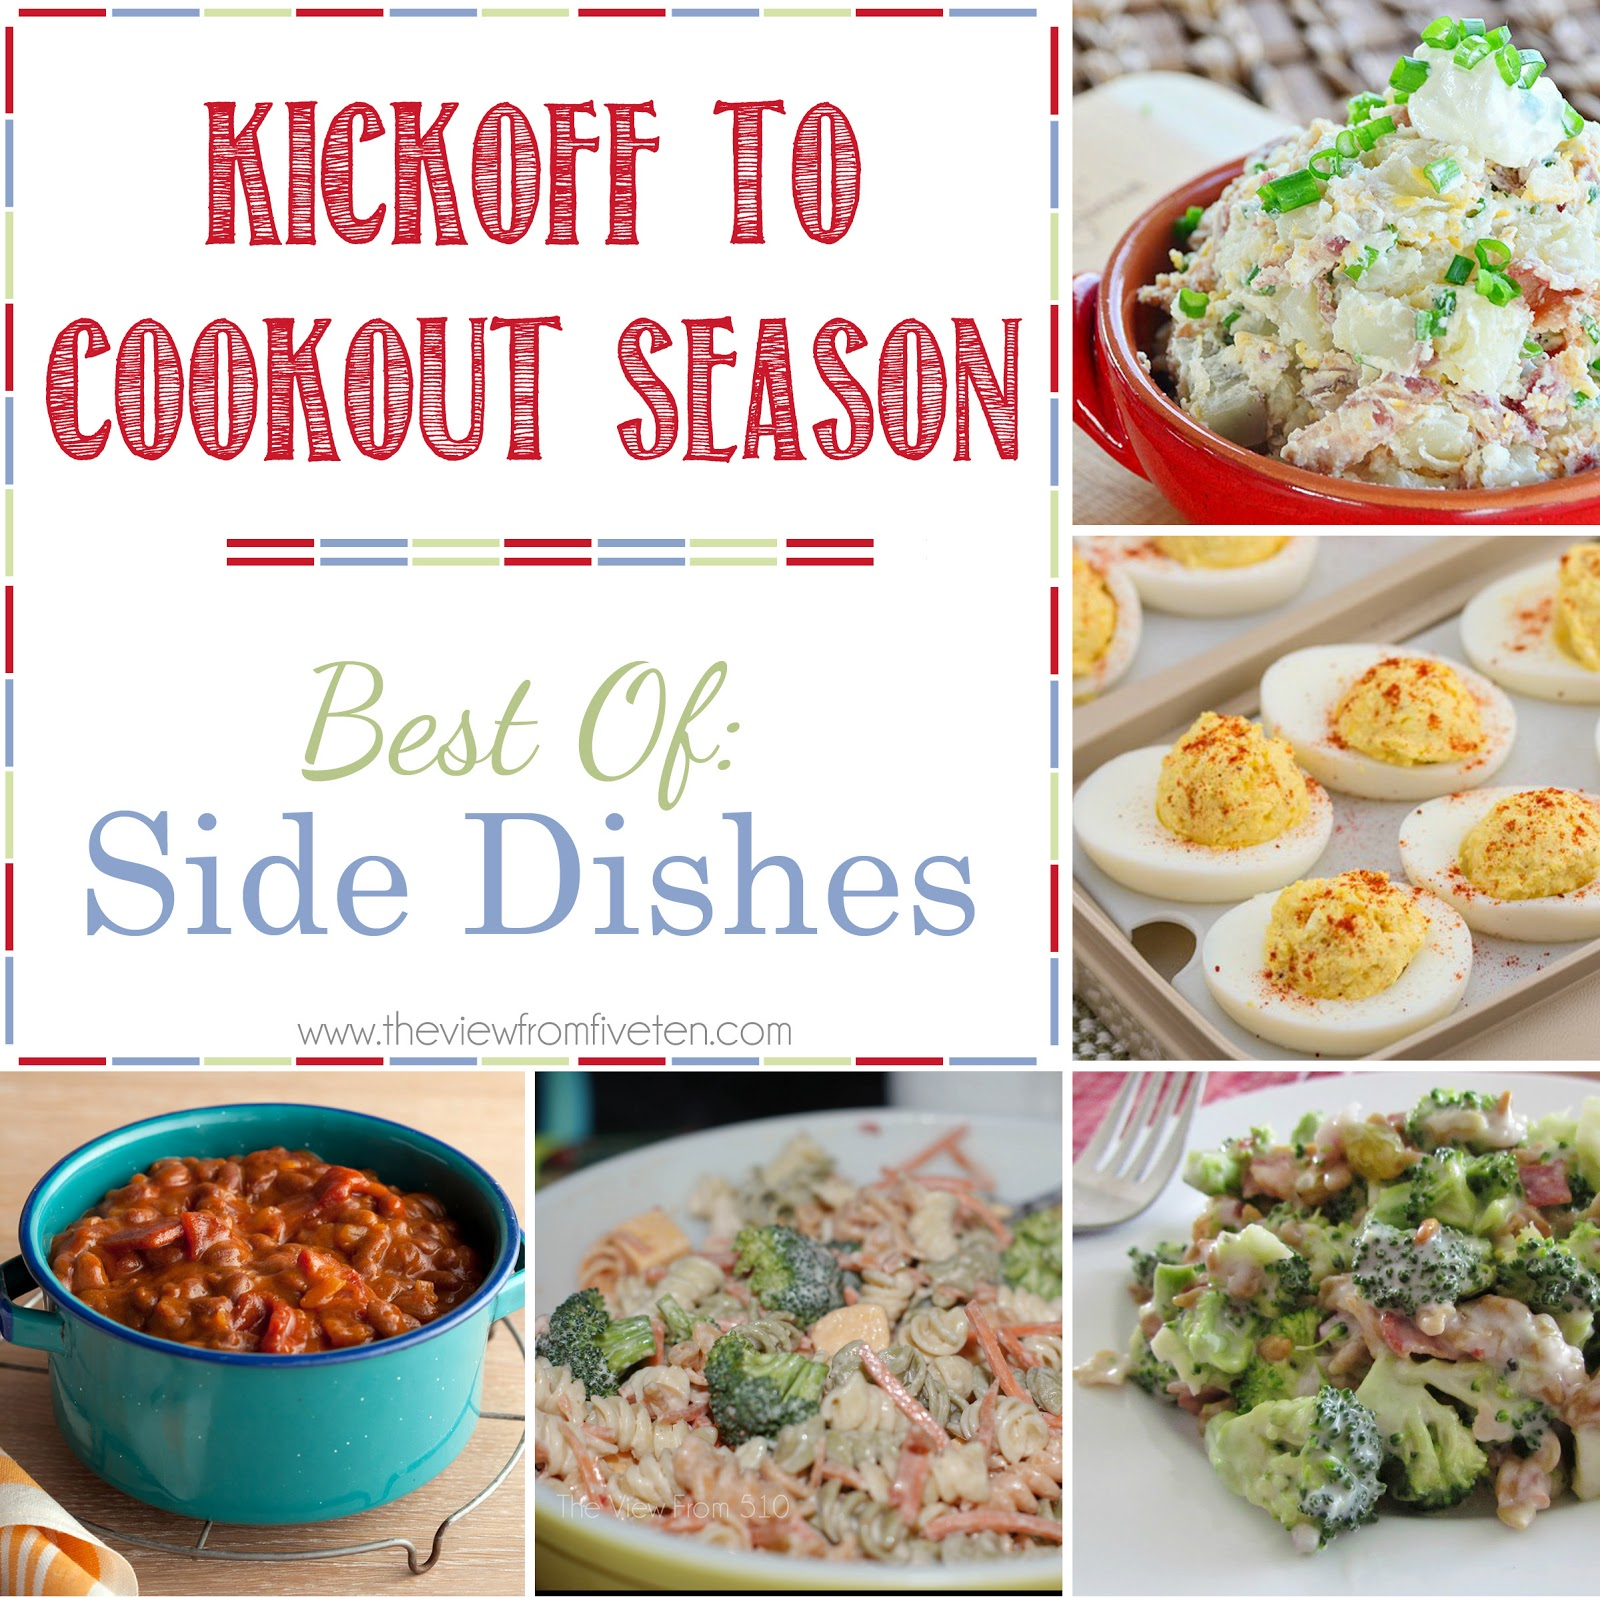 Kickoff To Cookout Season {Side Dishes}